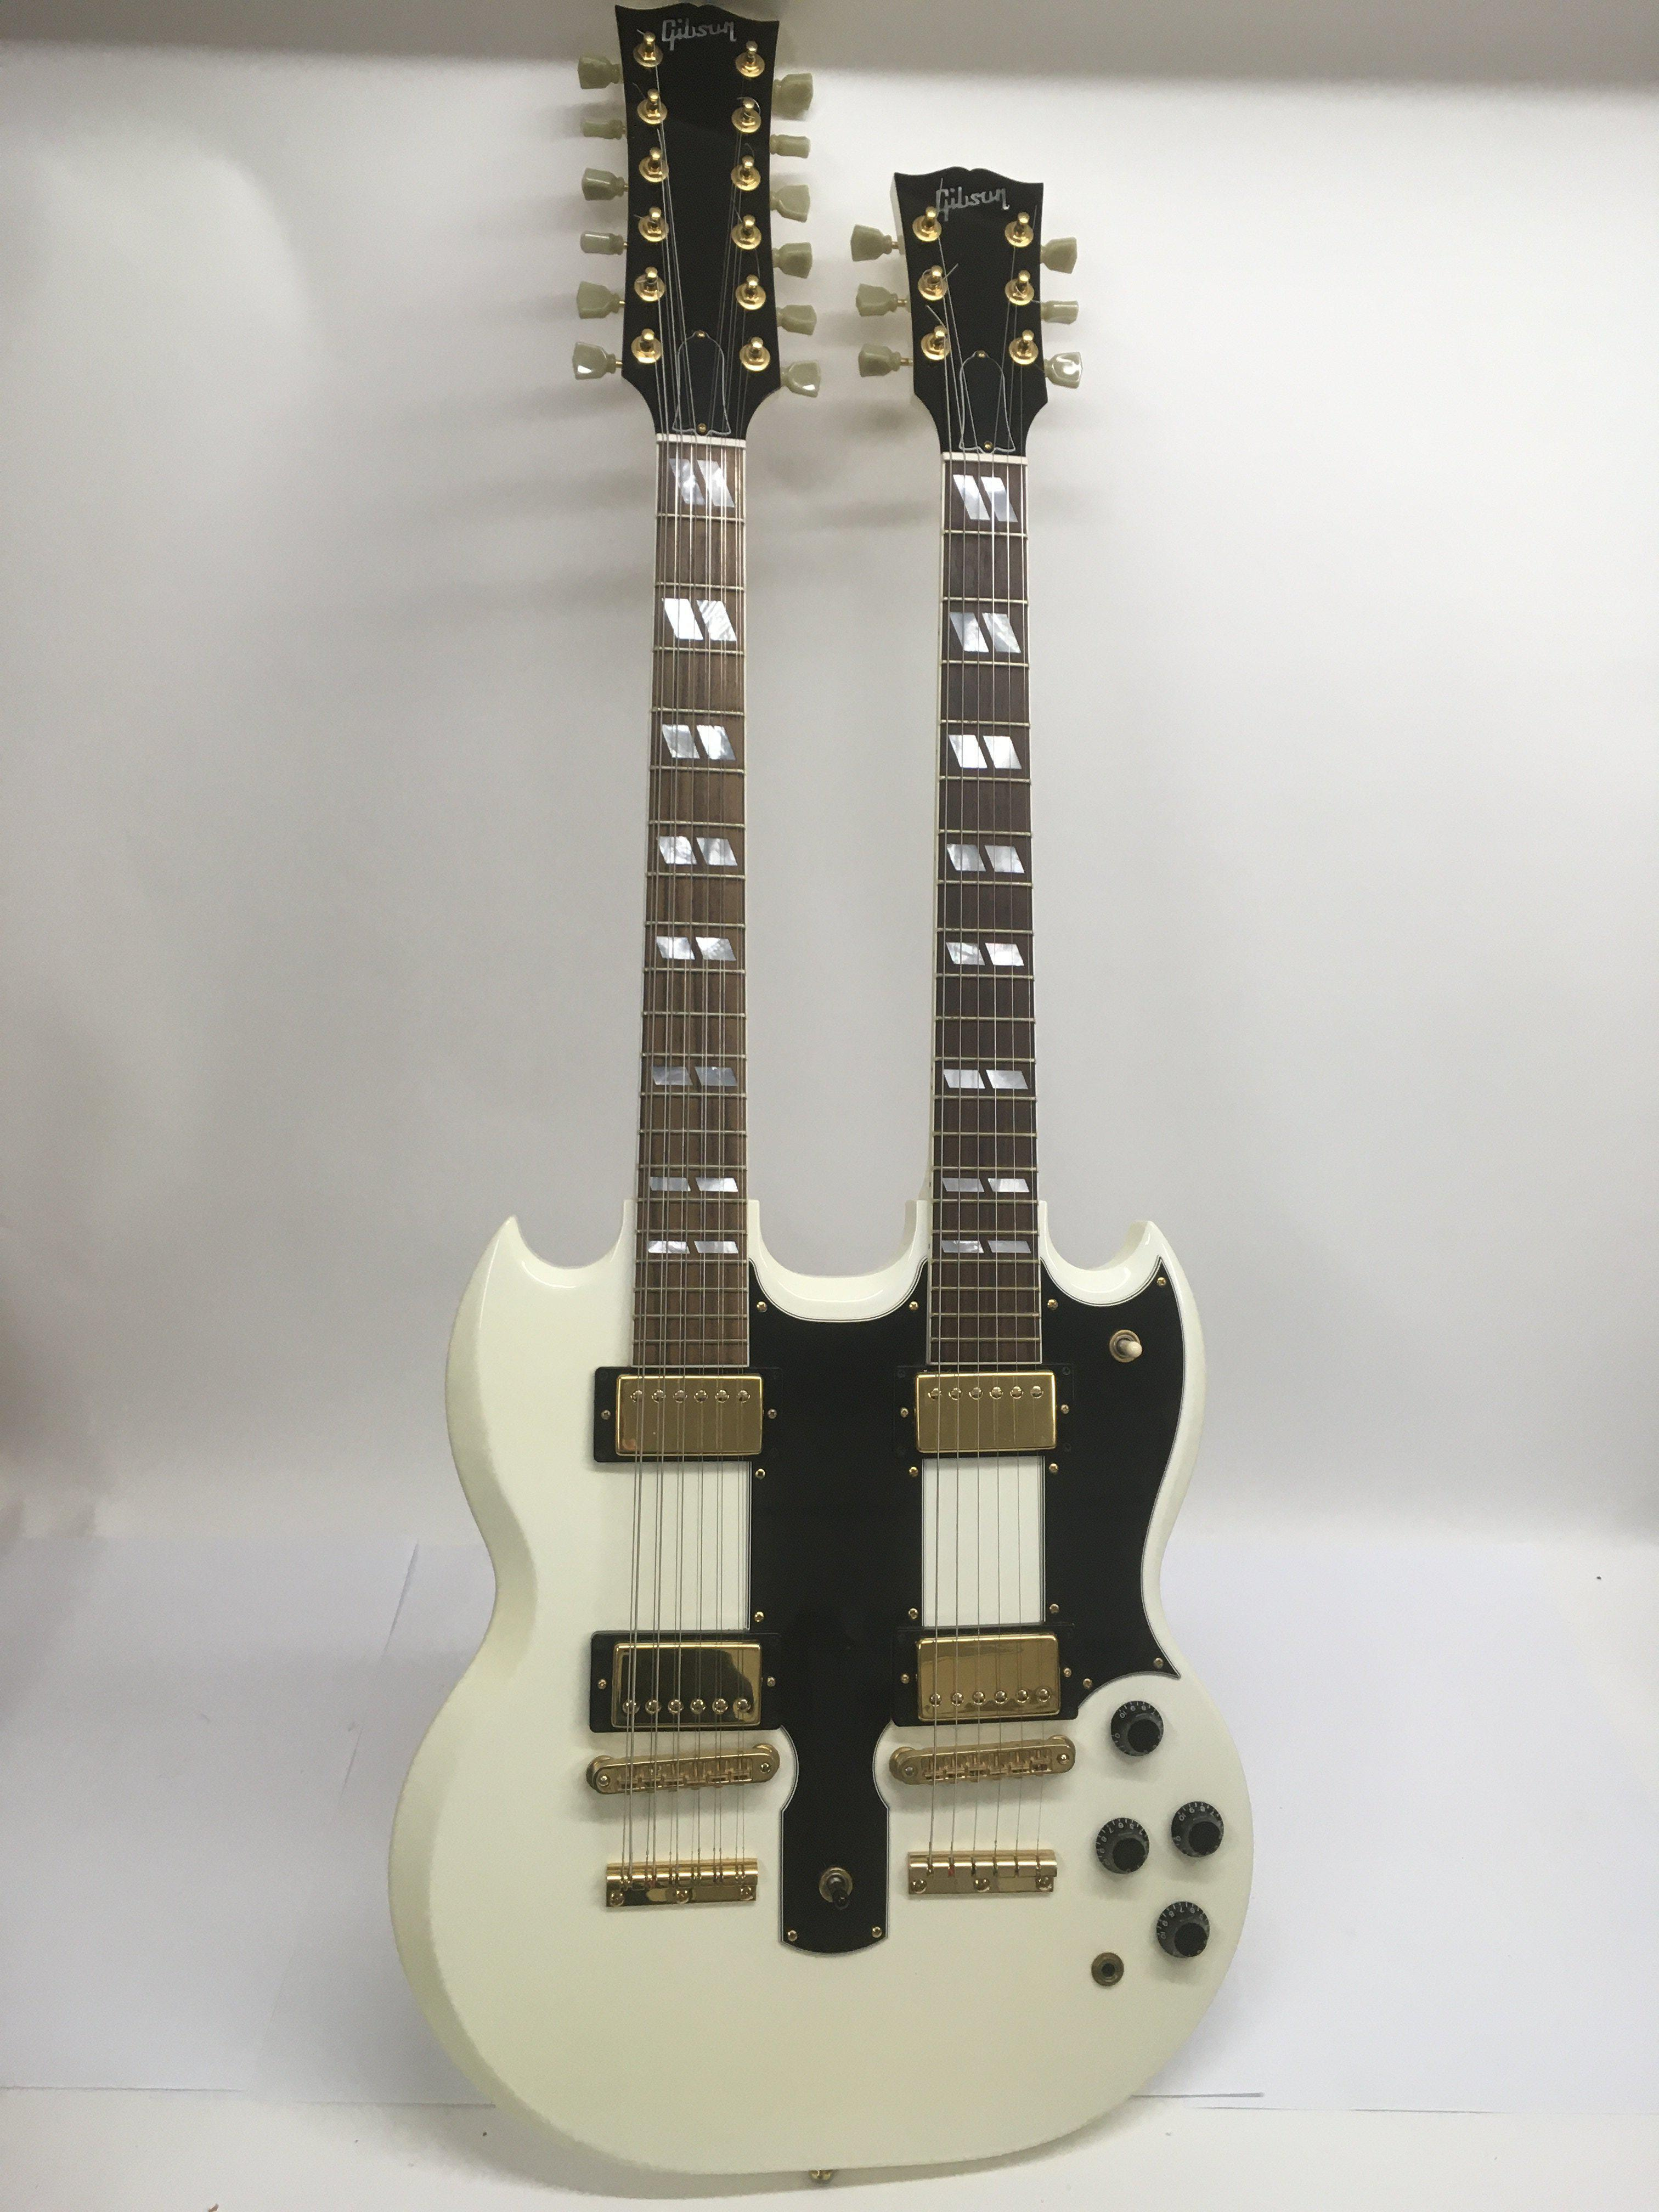 A Gibson double neck 6 and 12 string electric guit